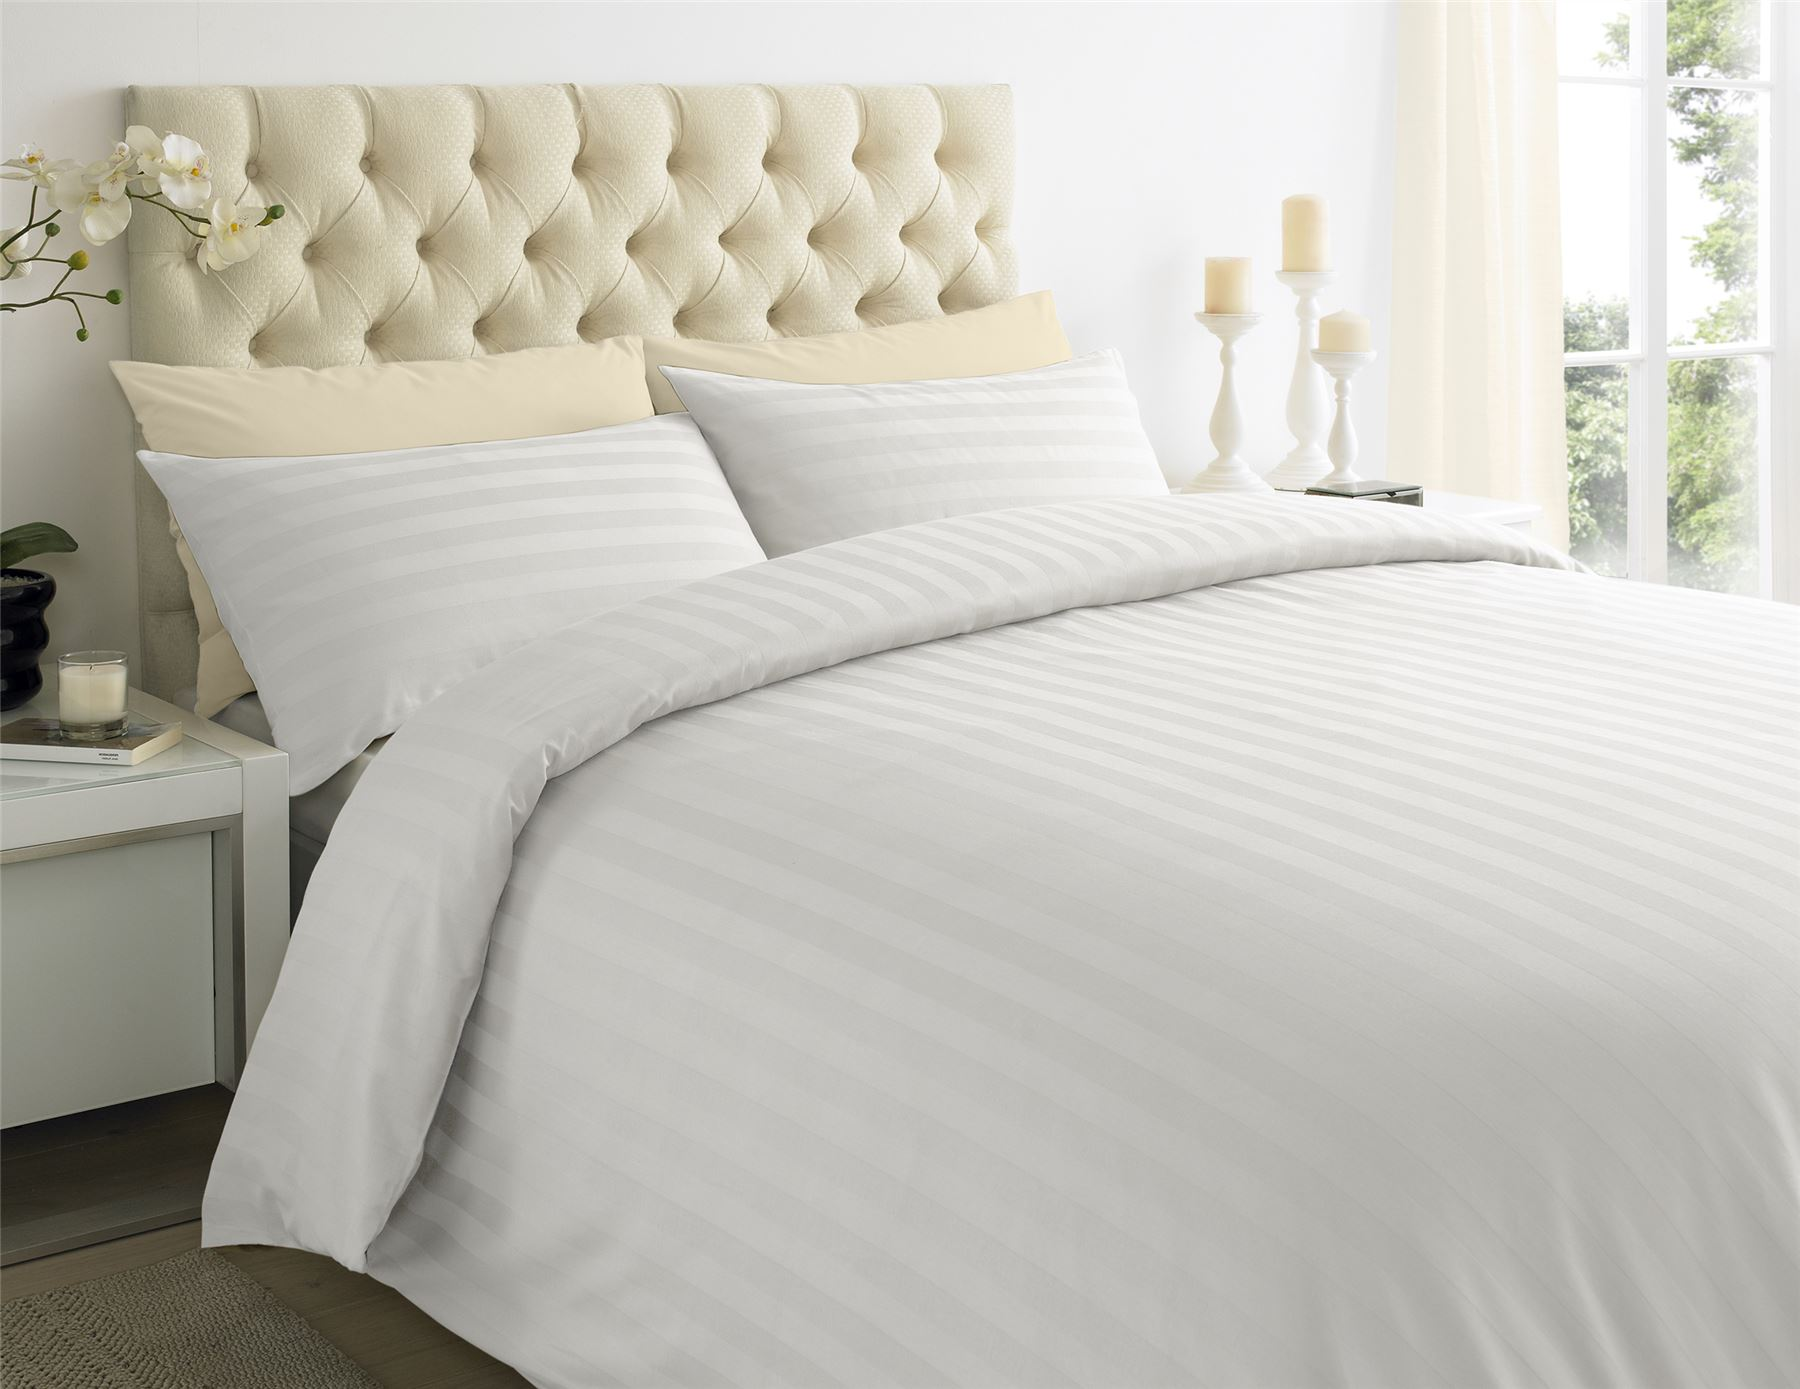 250tc Egyptian Cotton Sateen Stripe Duvet Quilt Cover Double U0026 King Bedding  Set White Double. About This Product. Picture 1 Of 2; Picture 2 Of 2